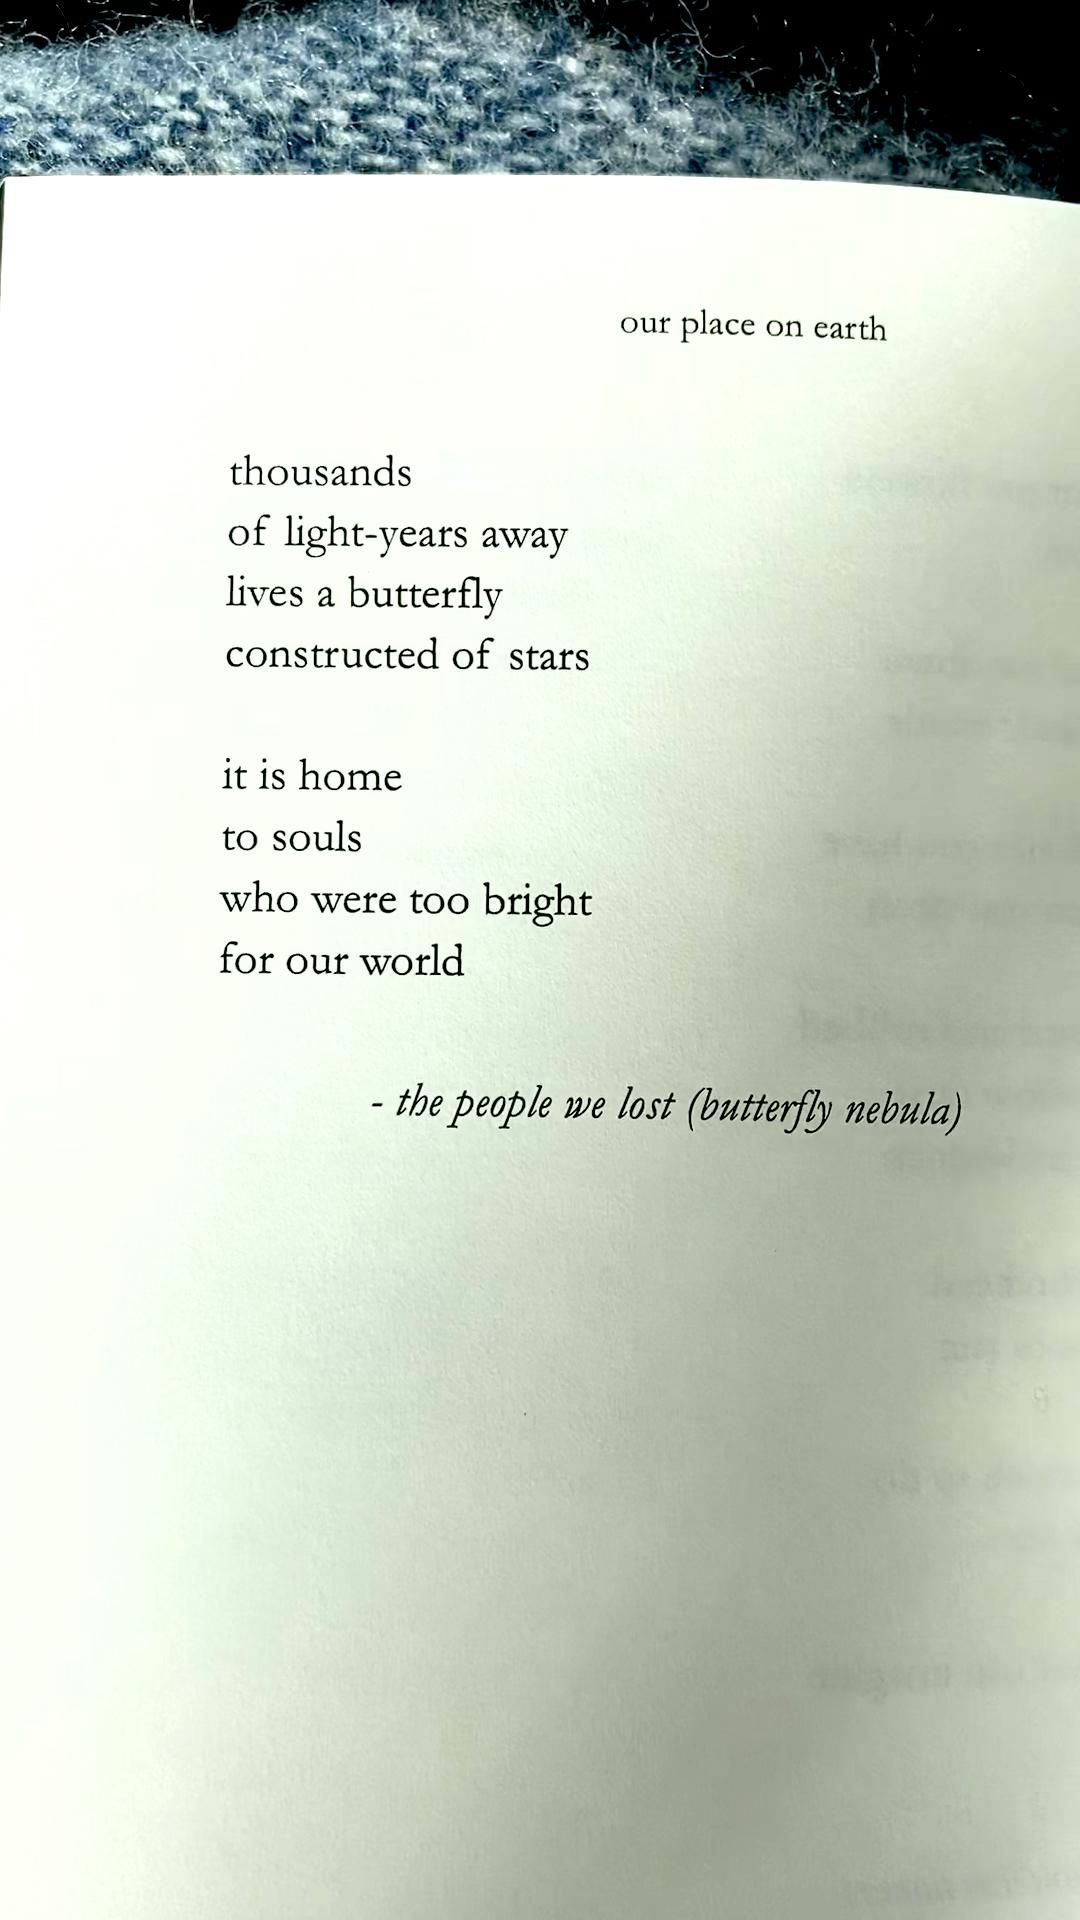 from vic lejon's book 'our place on earth' ♥️ available on Amazon, Barnes and Noble & many more